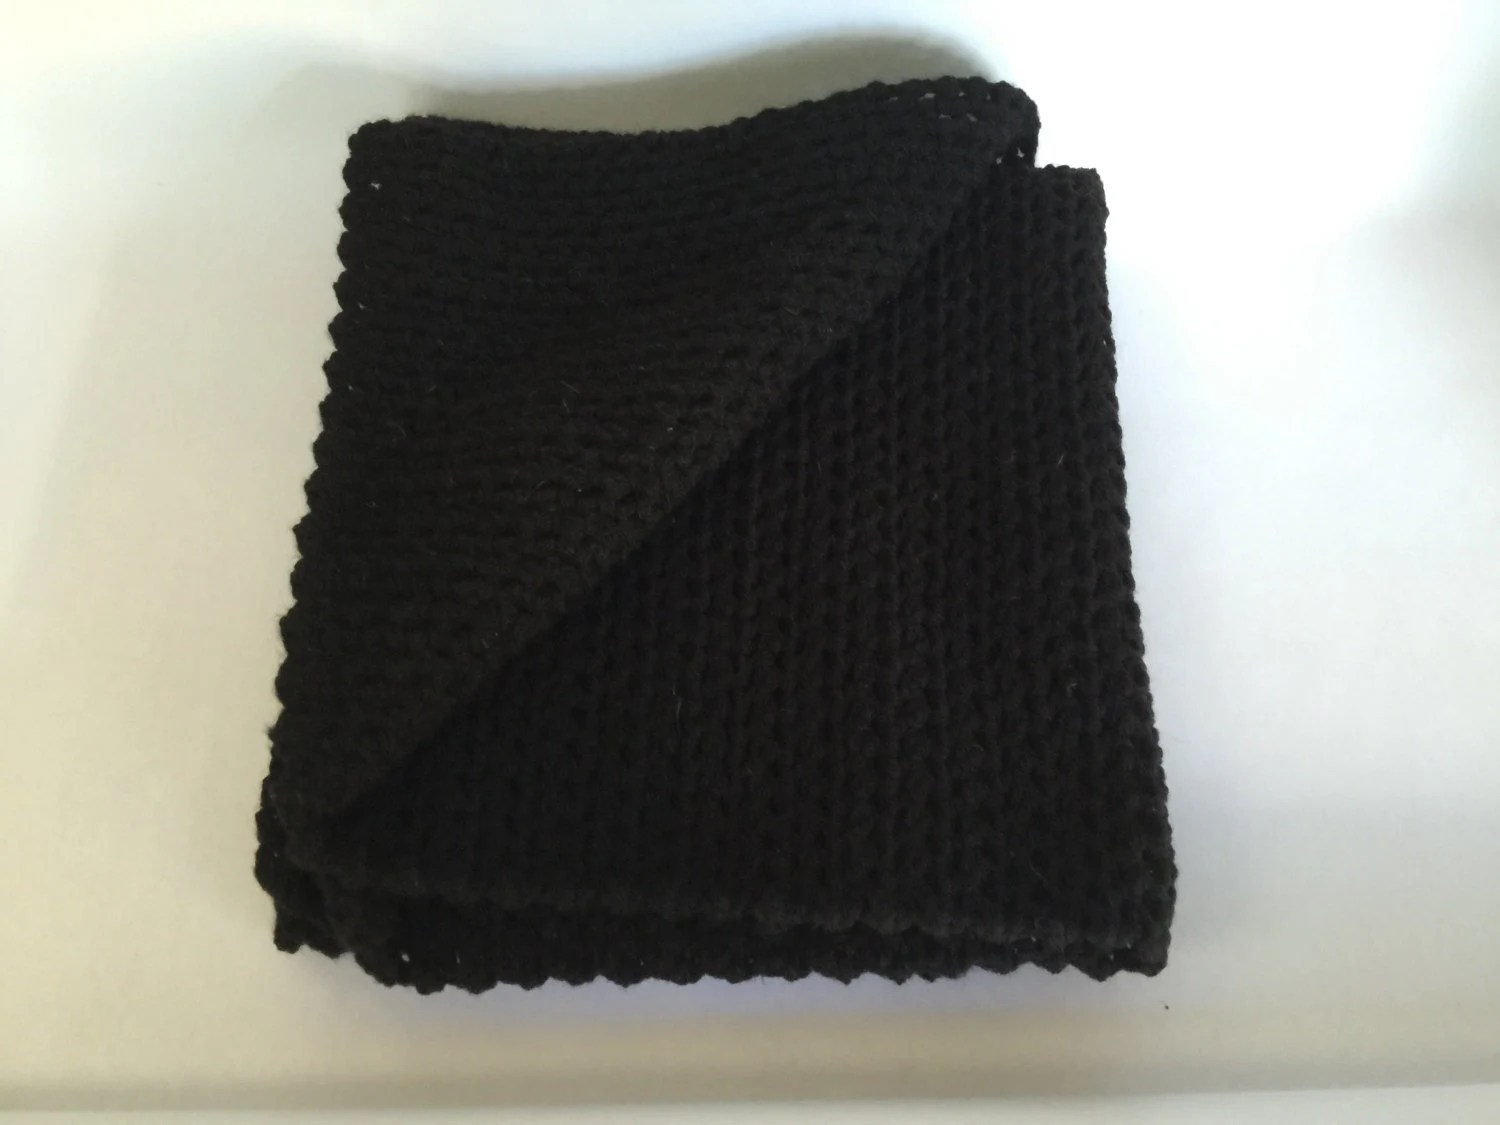 wheelchair blanket baby high chair for eating lap cover office throw work black crochet